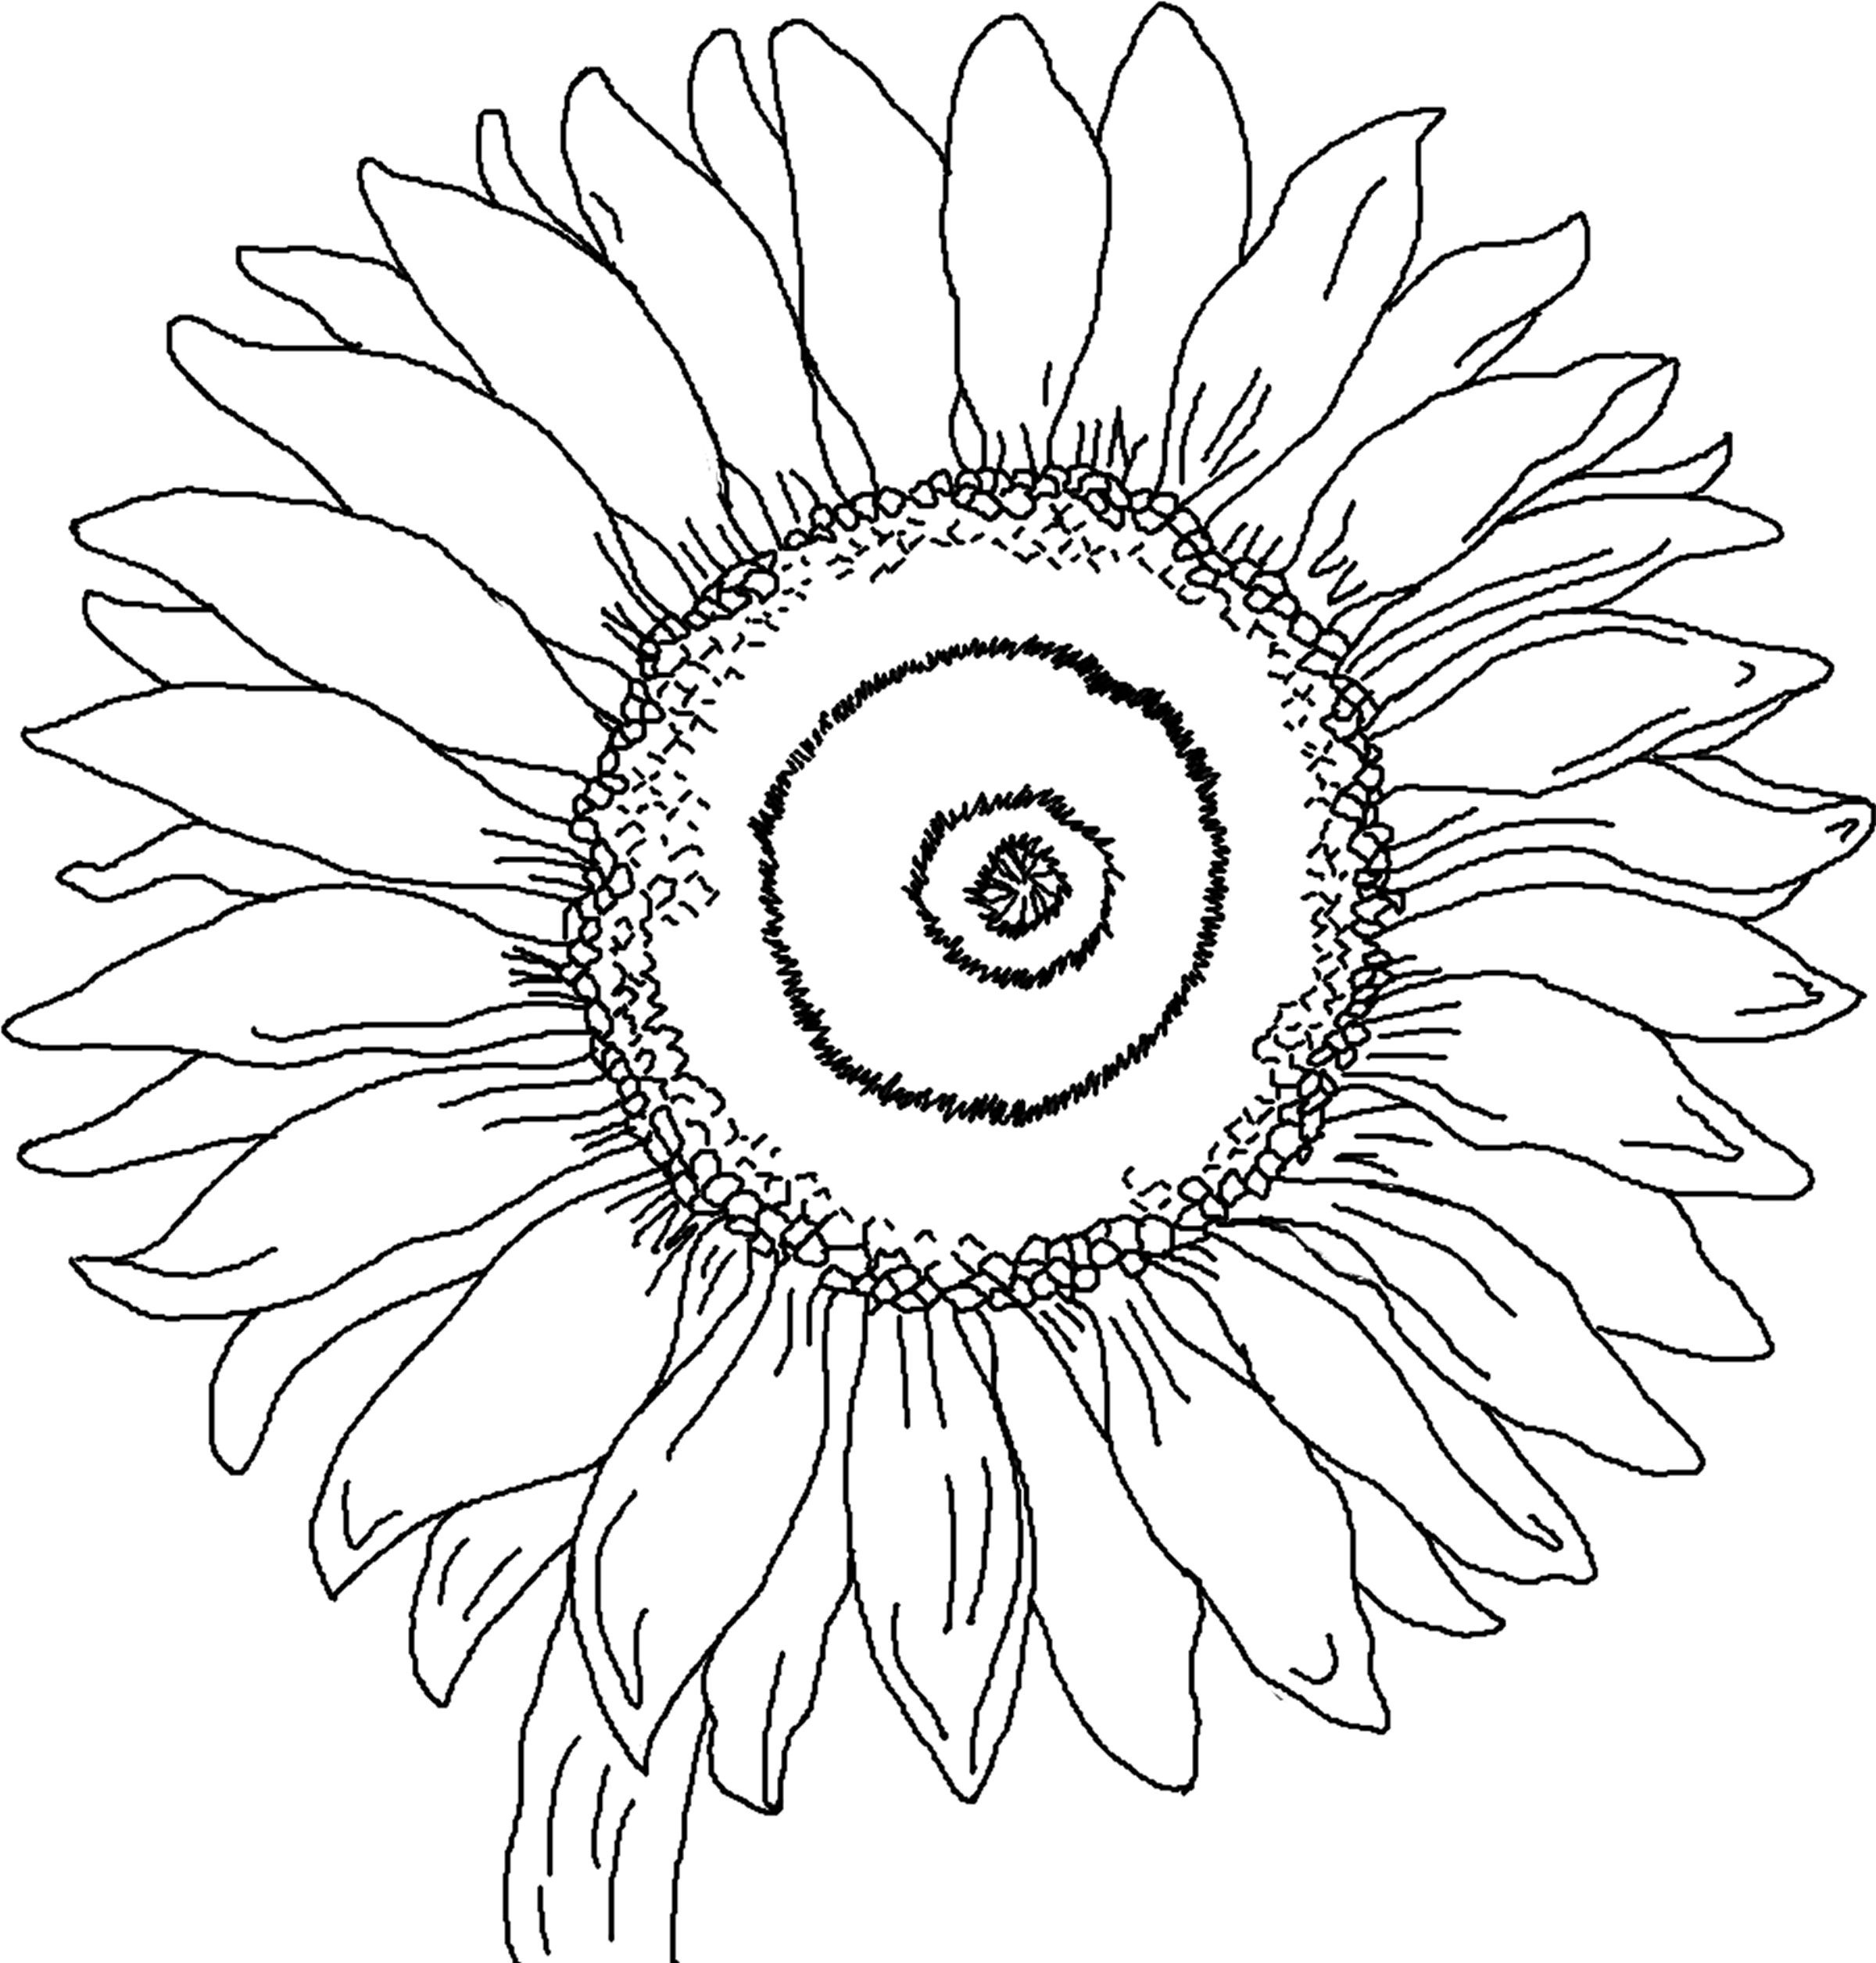 sunflower coloring page sunflower drawing color at getdrawings free download coloring sunflower page